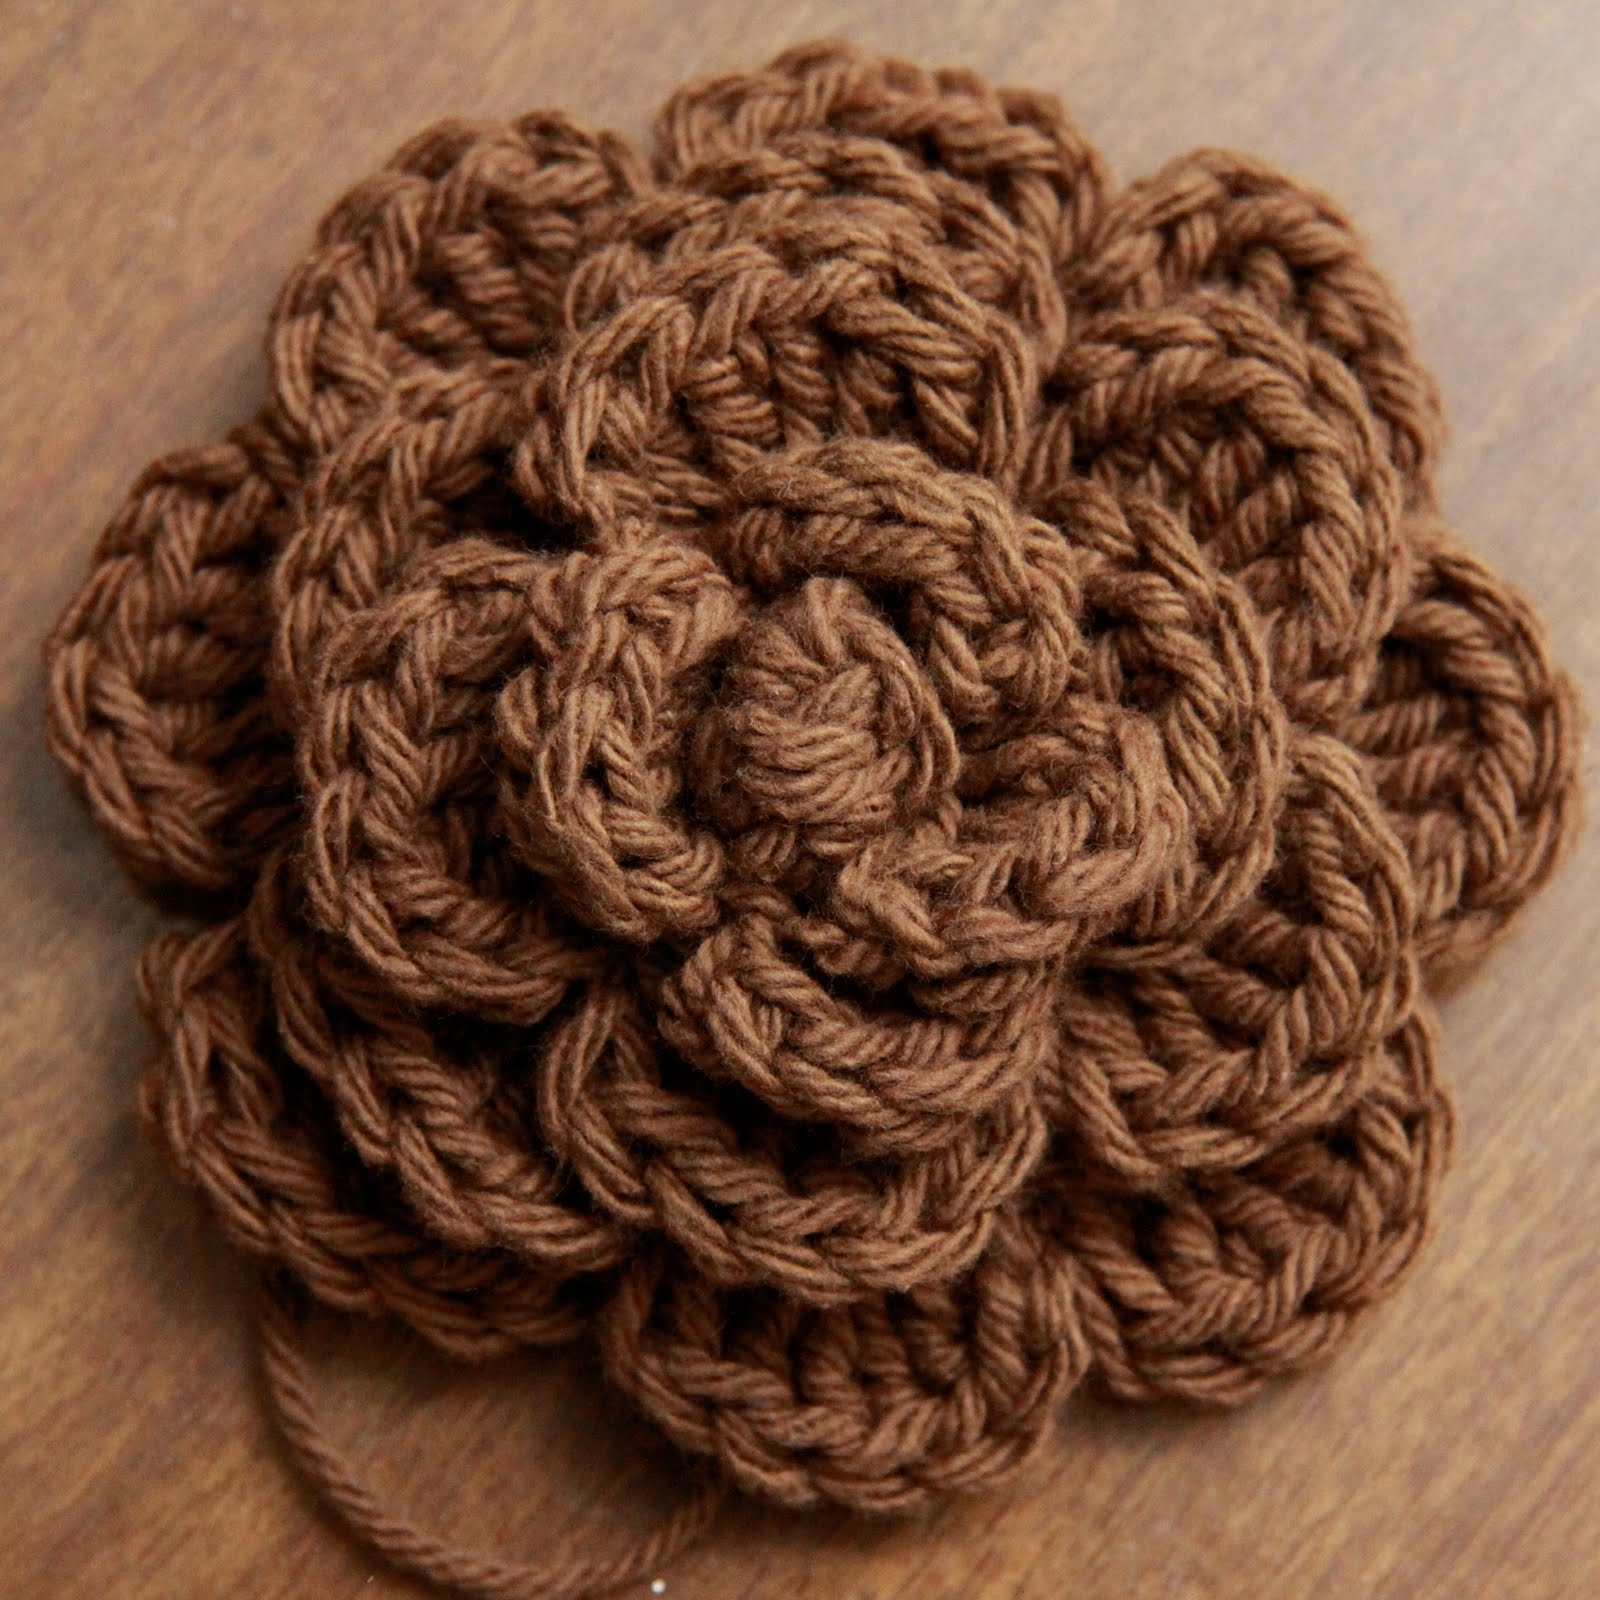 Crochet Patterns Hair : Crochet Hair Accessories